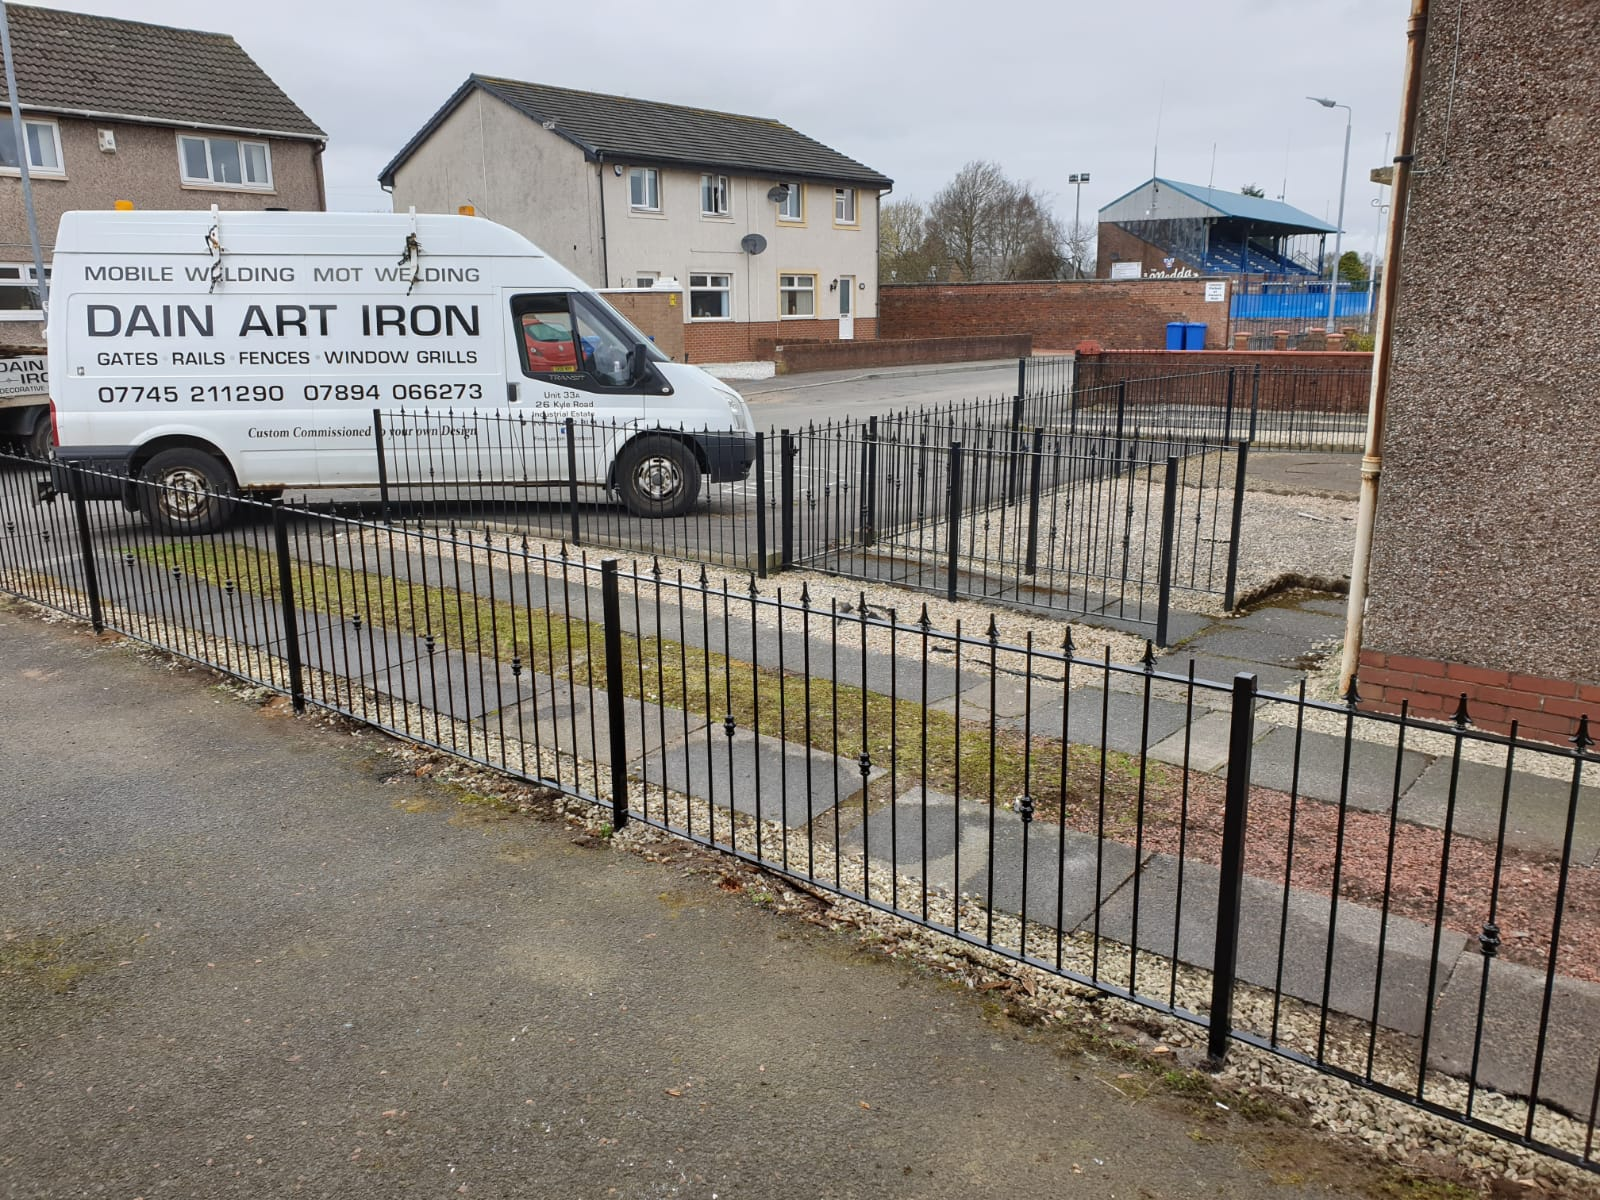 Custom metal fencing designed, fabricated and installed by Dain Art Iron, Ayrshire, Scotland.